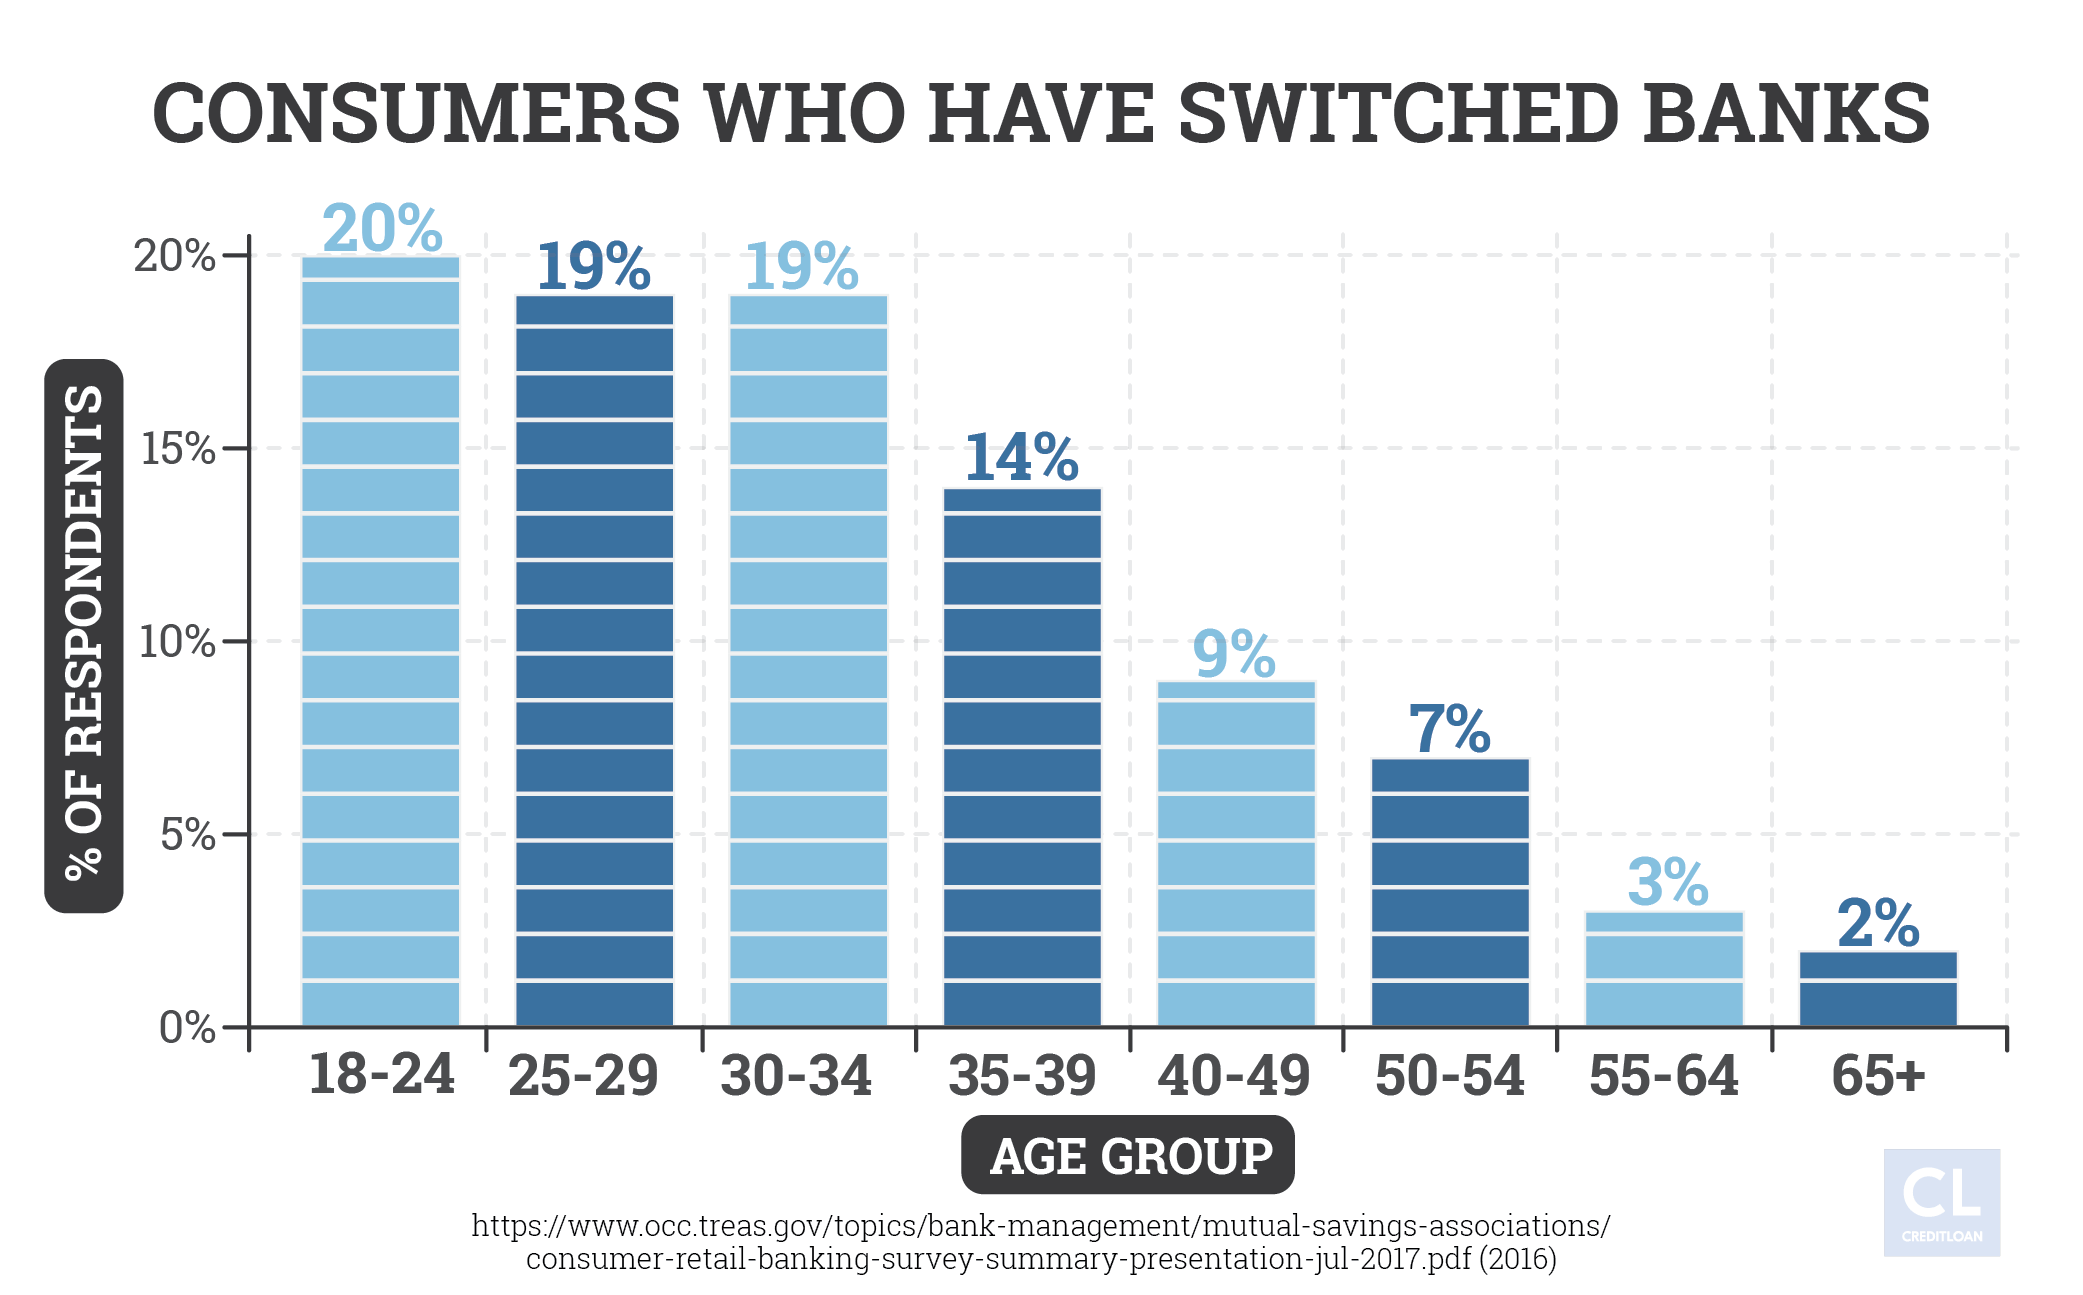 Consumers Who Have Switched Banks by Age